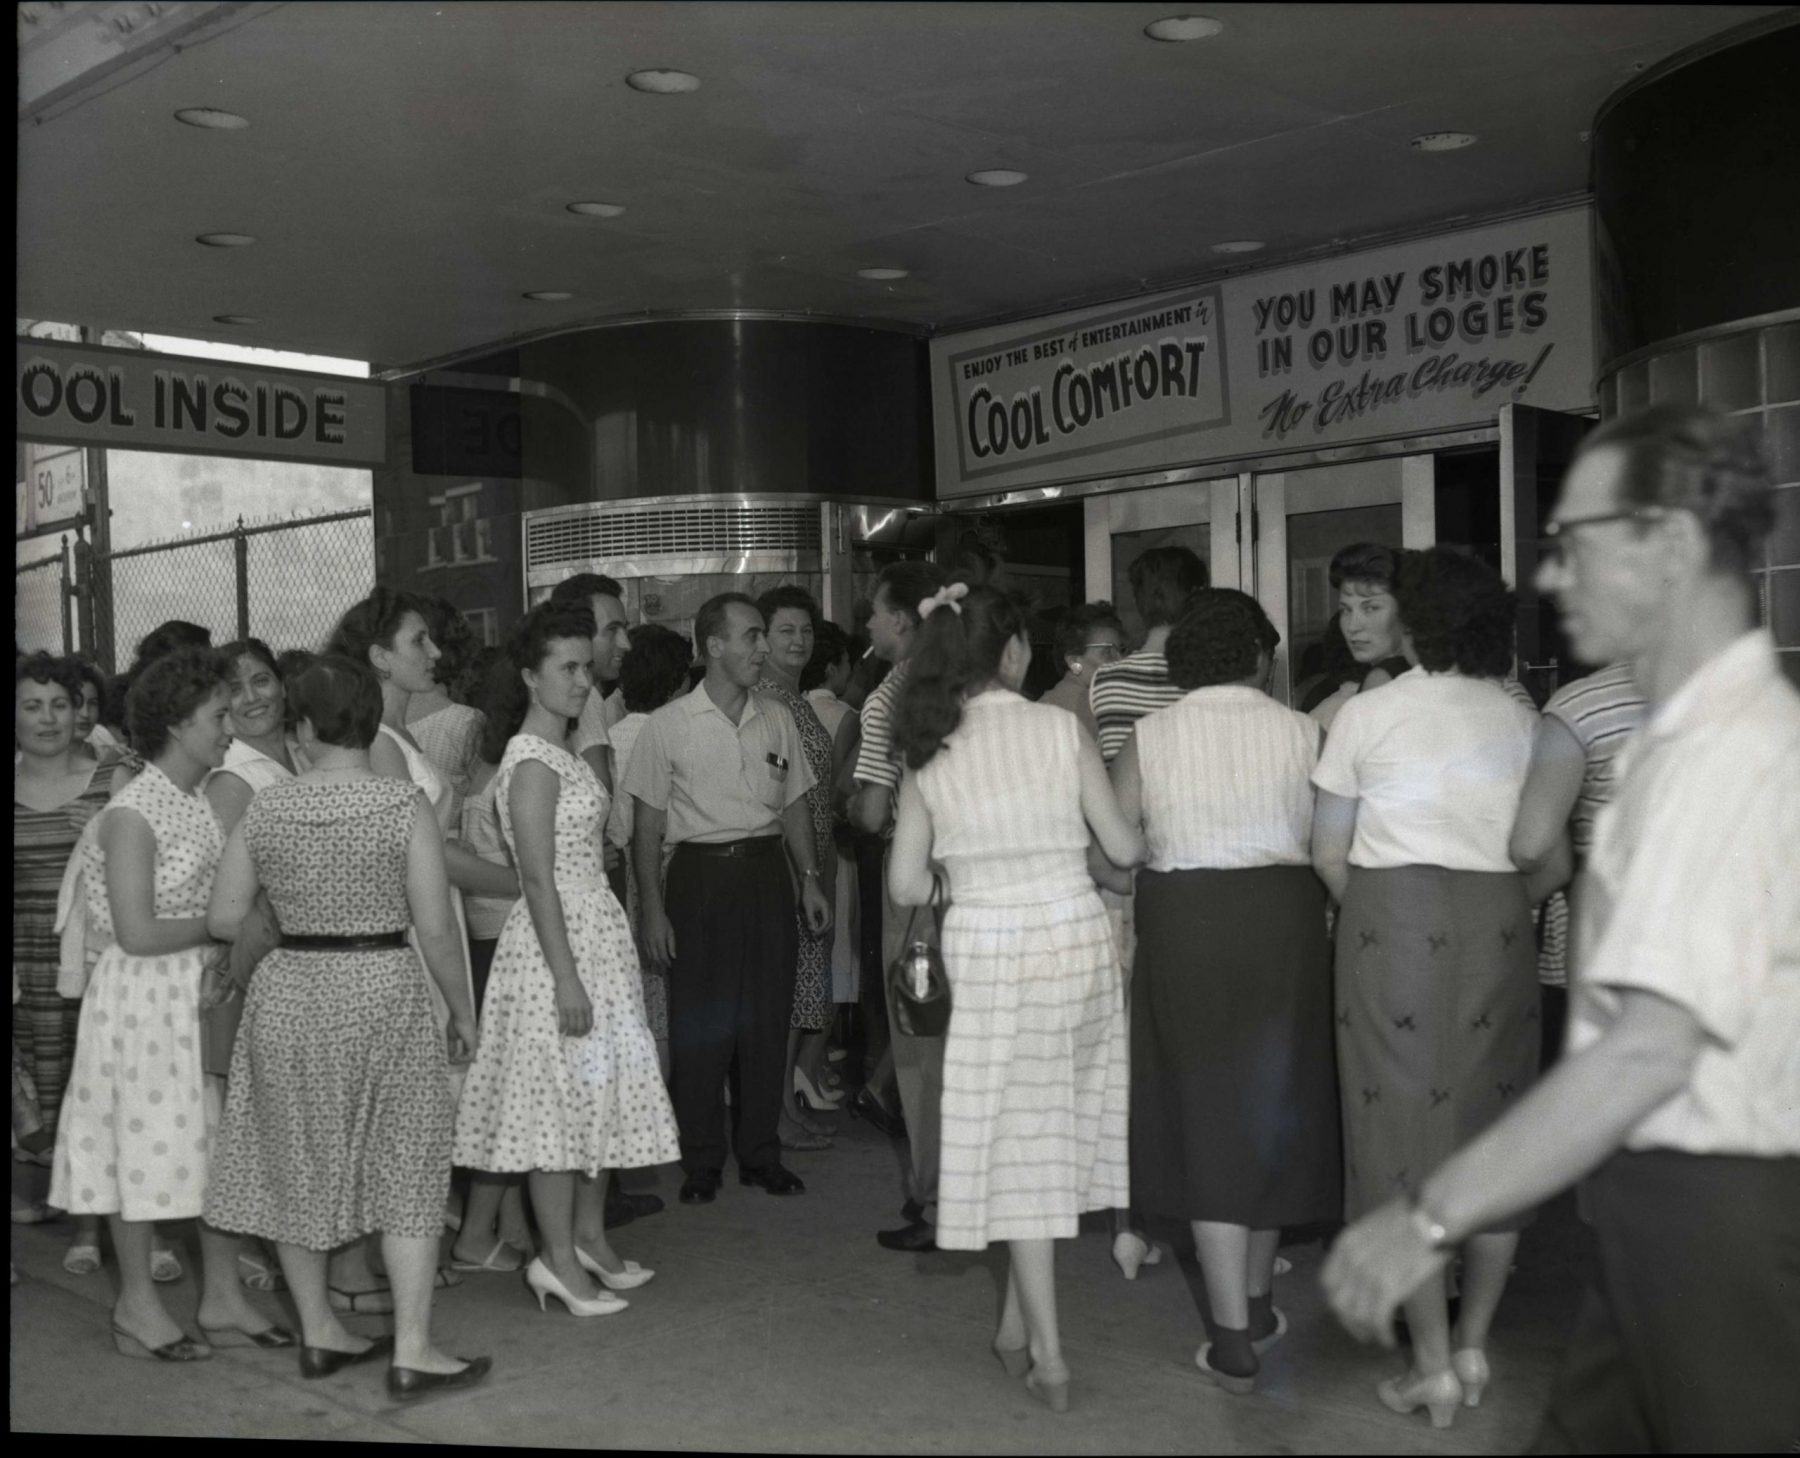 Garment workers arriving at the Victory Theatre for the Cloakmakers' Union rally in September 1960. The Union was organized to assist and protect workers in the women's garment industry.   OJA fonds 18, series 3, file 53, item 5.